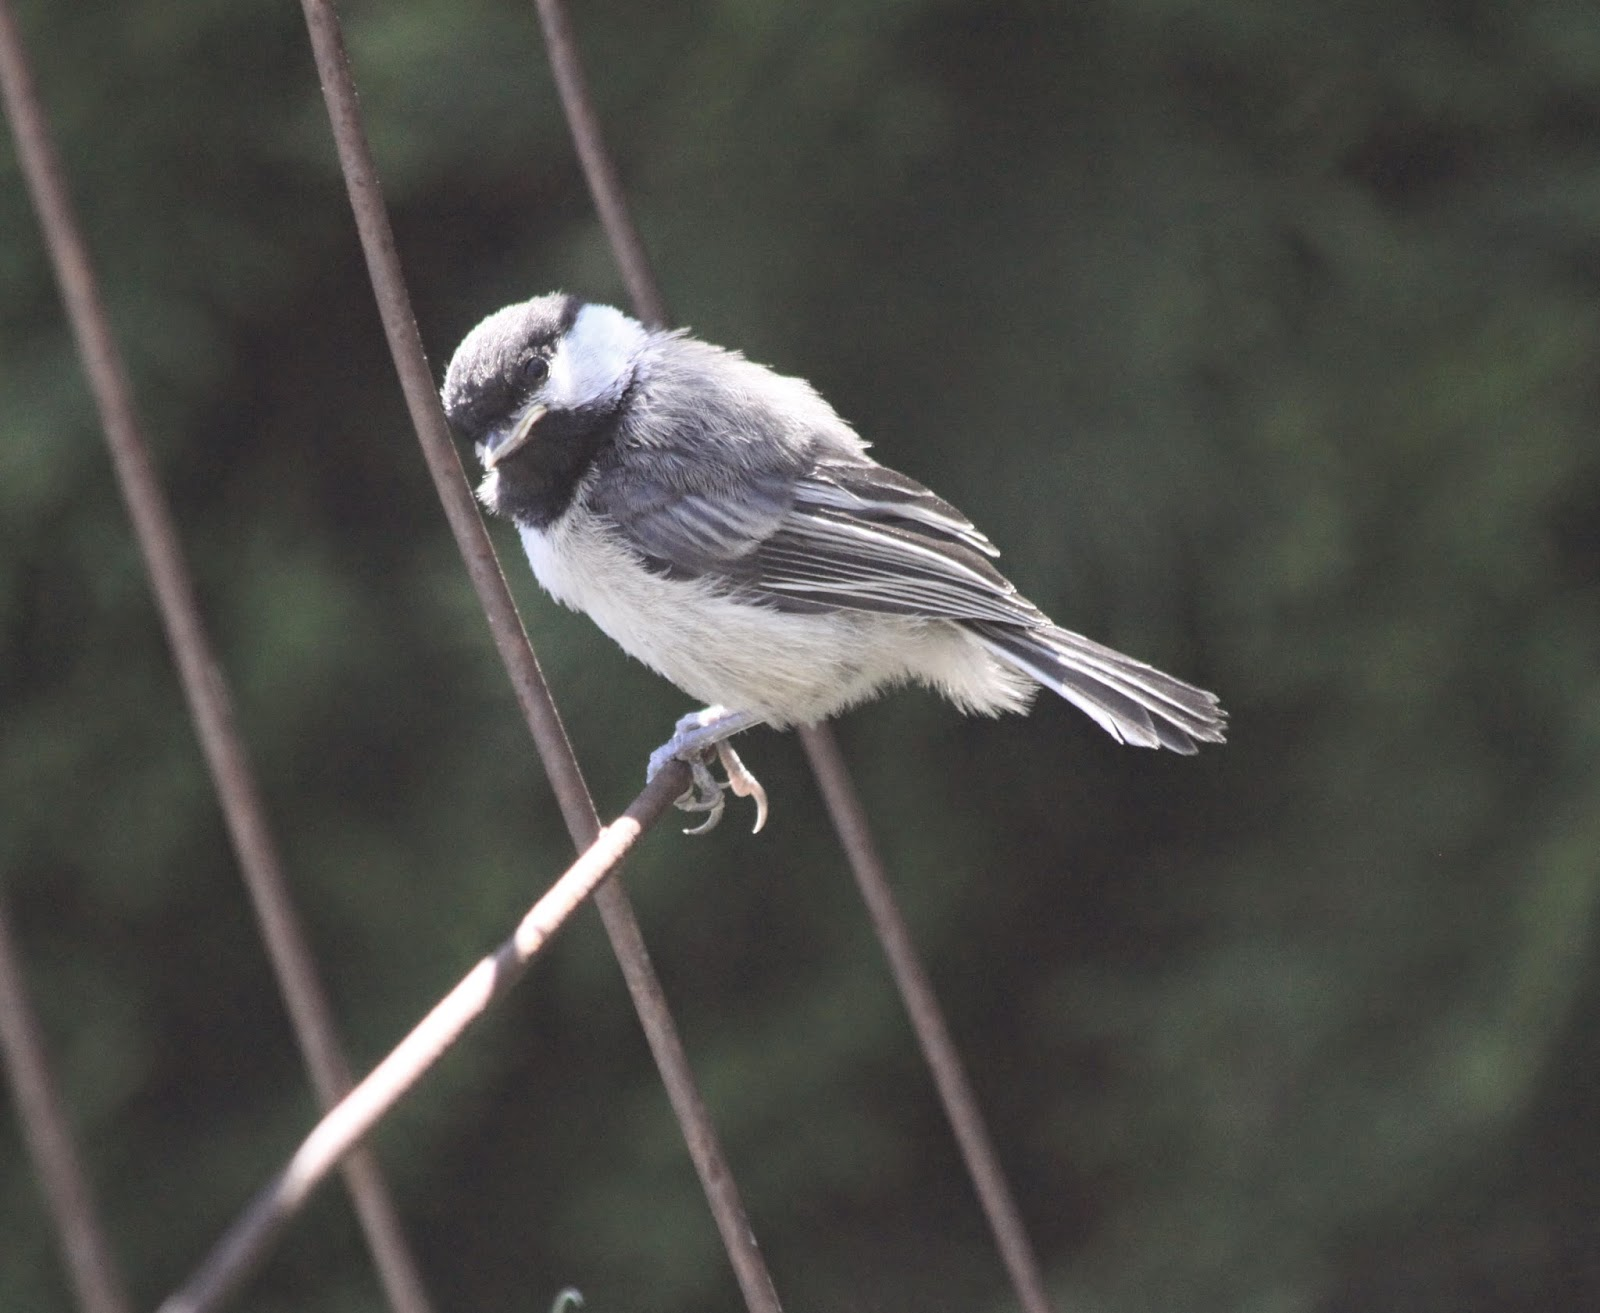 Chickadee Attracting birds